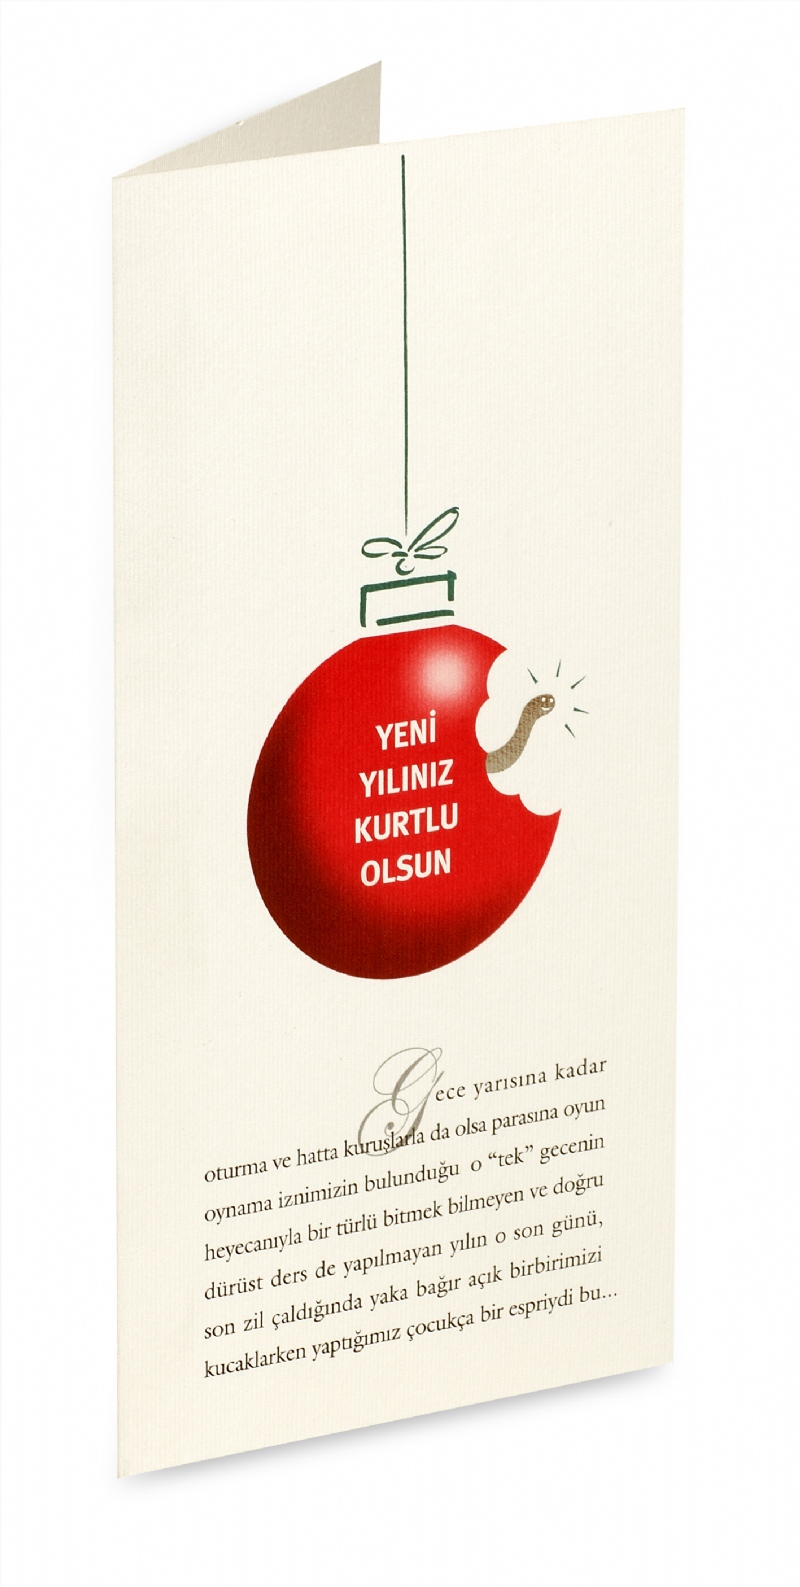 New year greeting card for Molu/Meridyen (2003)